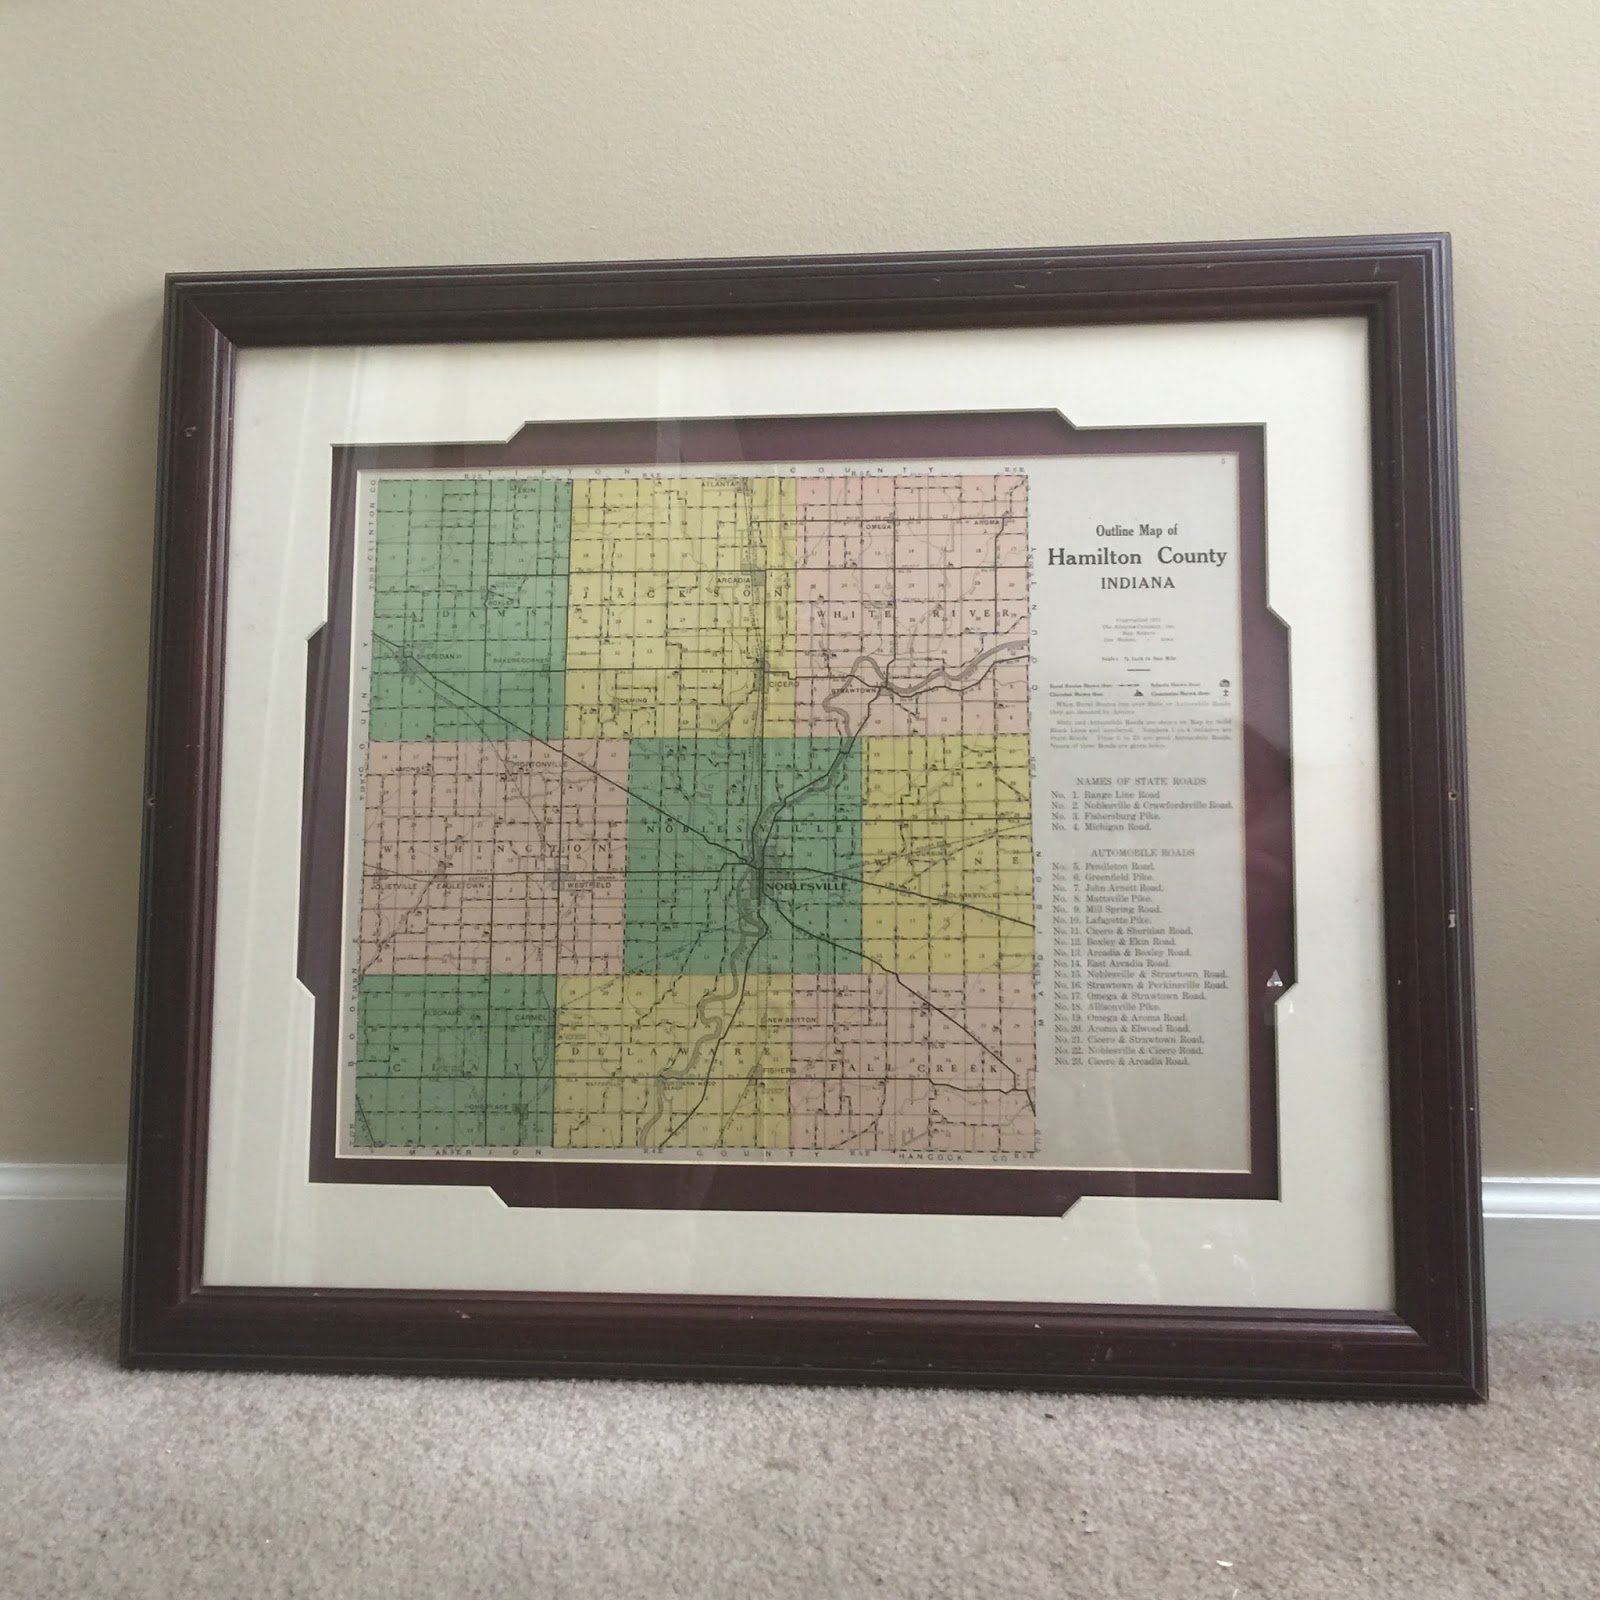 Framed 1921 map of Hamilton County from